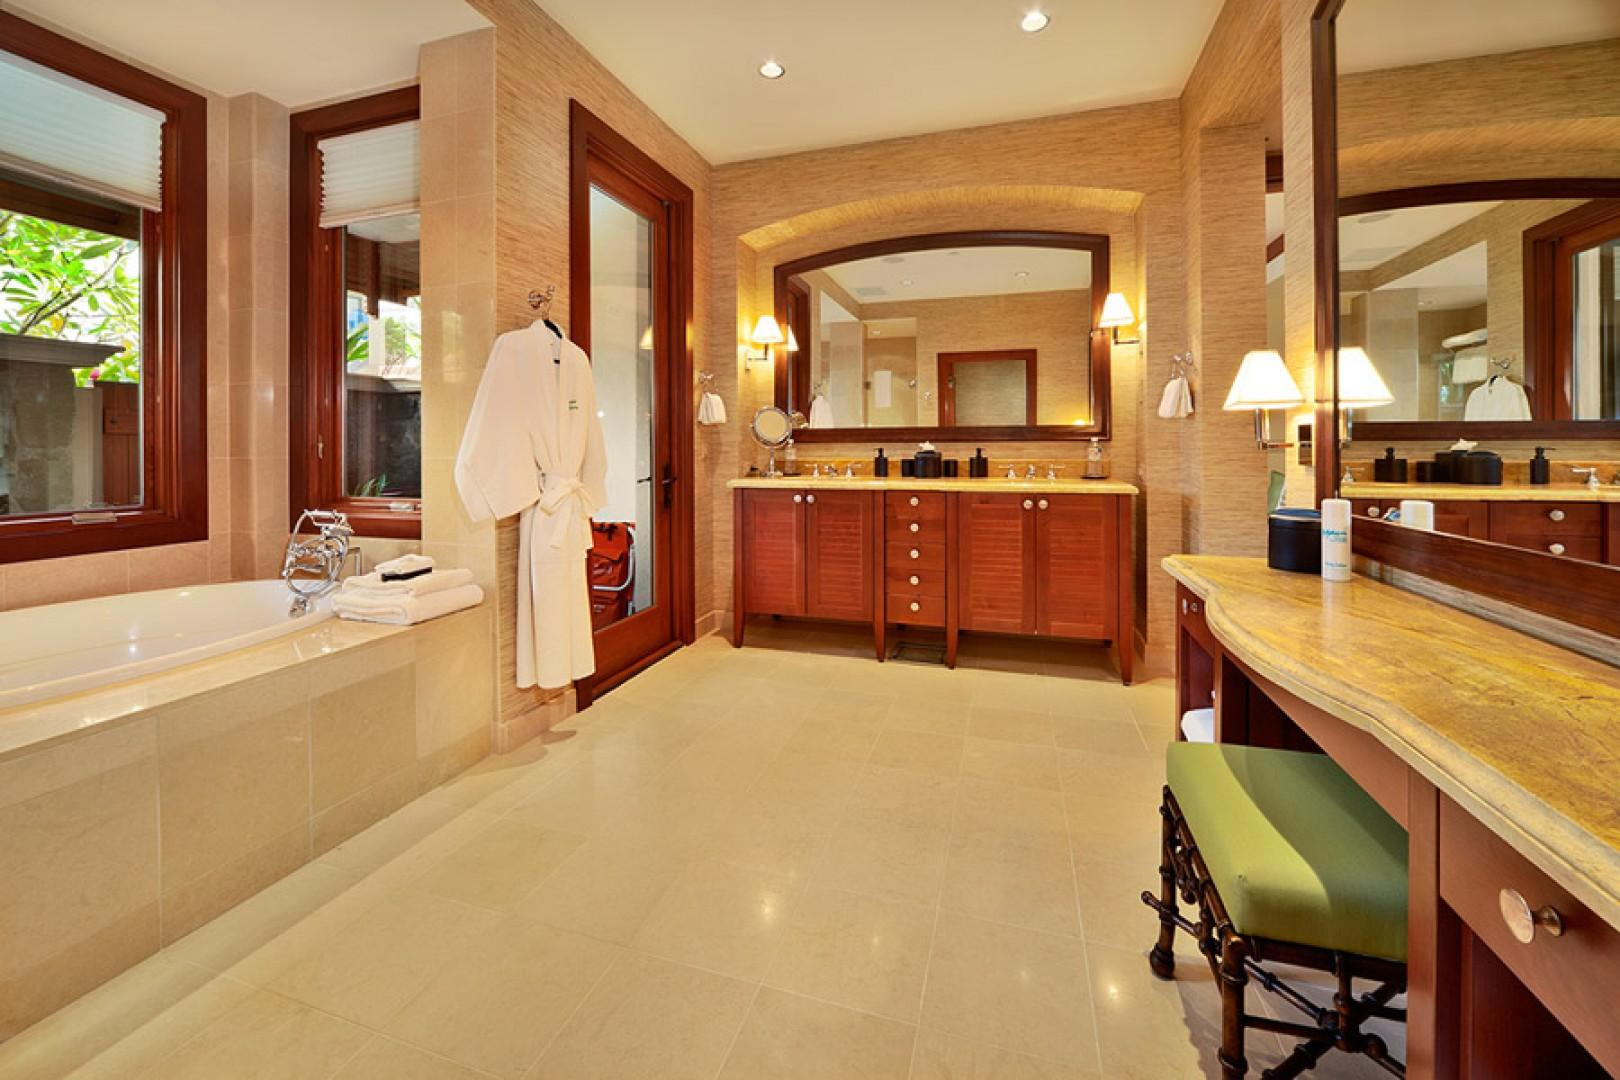 Private bath for second master bedroom.